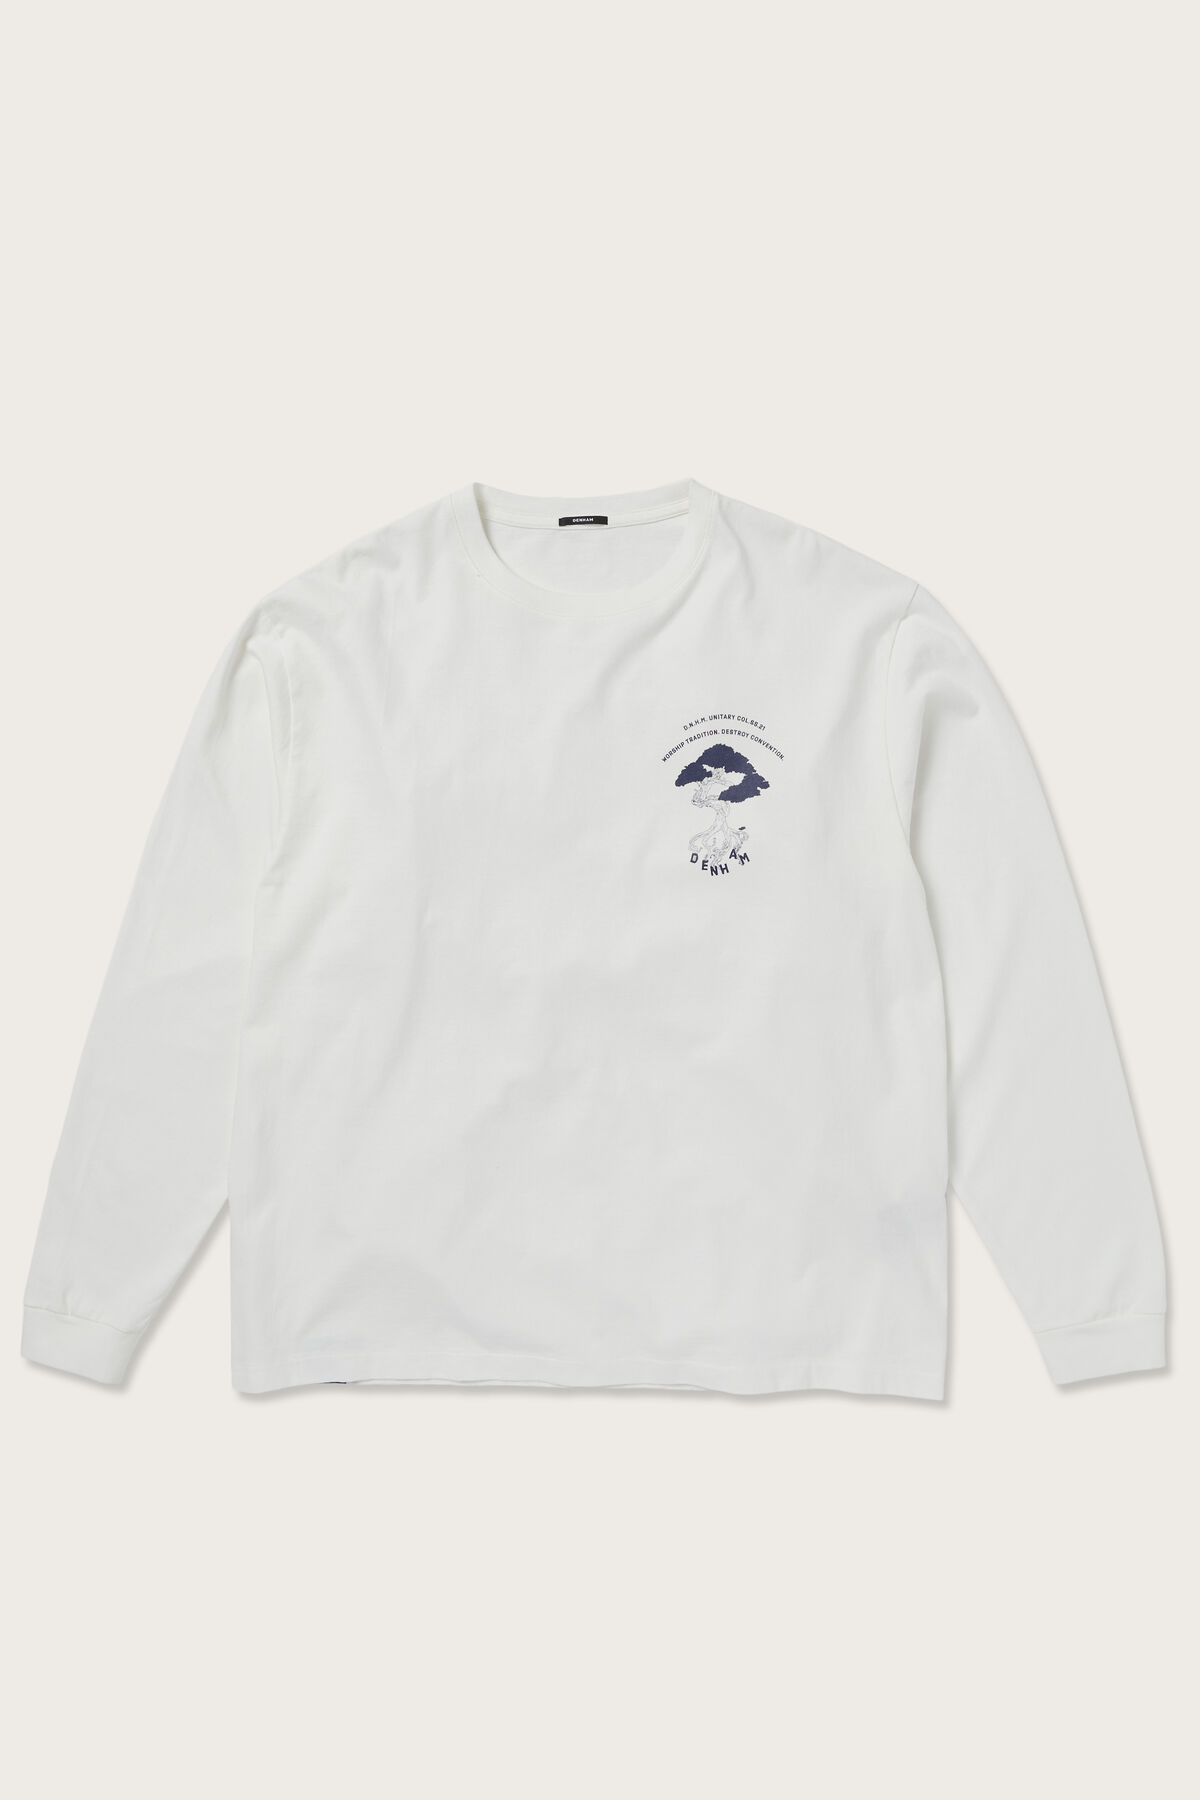 PINE LONG Pine Tree Graphic Artwork - Japanese Capsule Collection